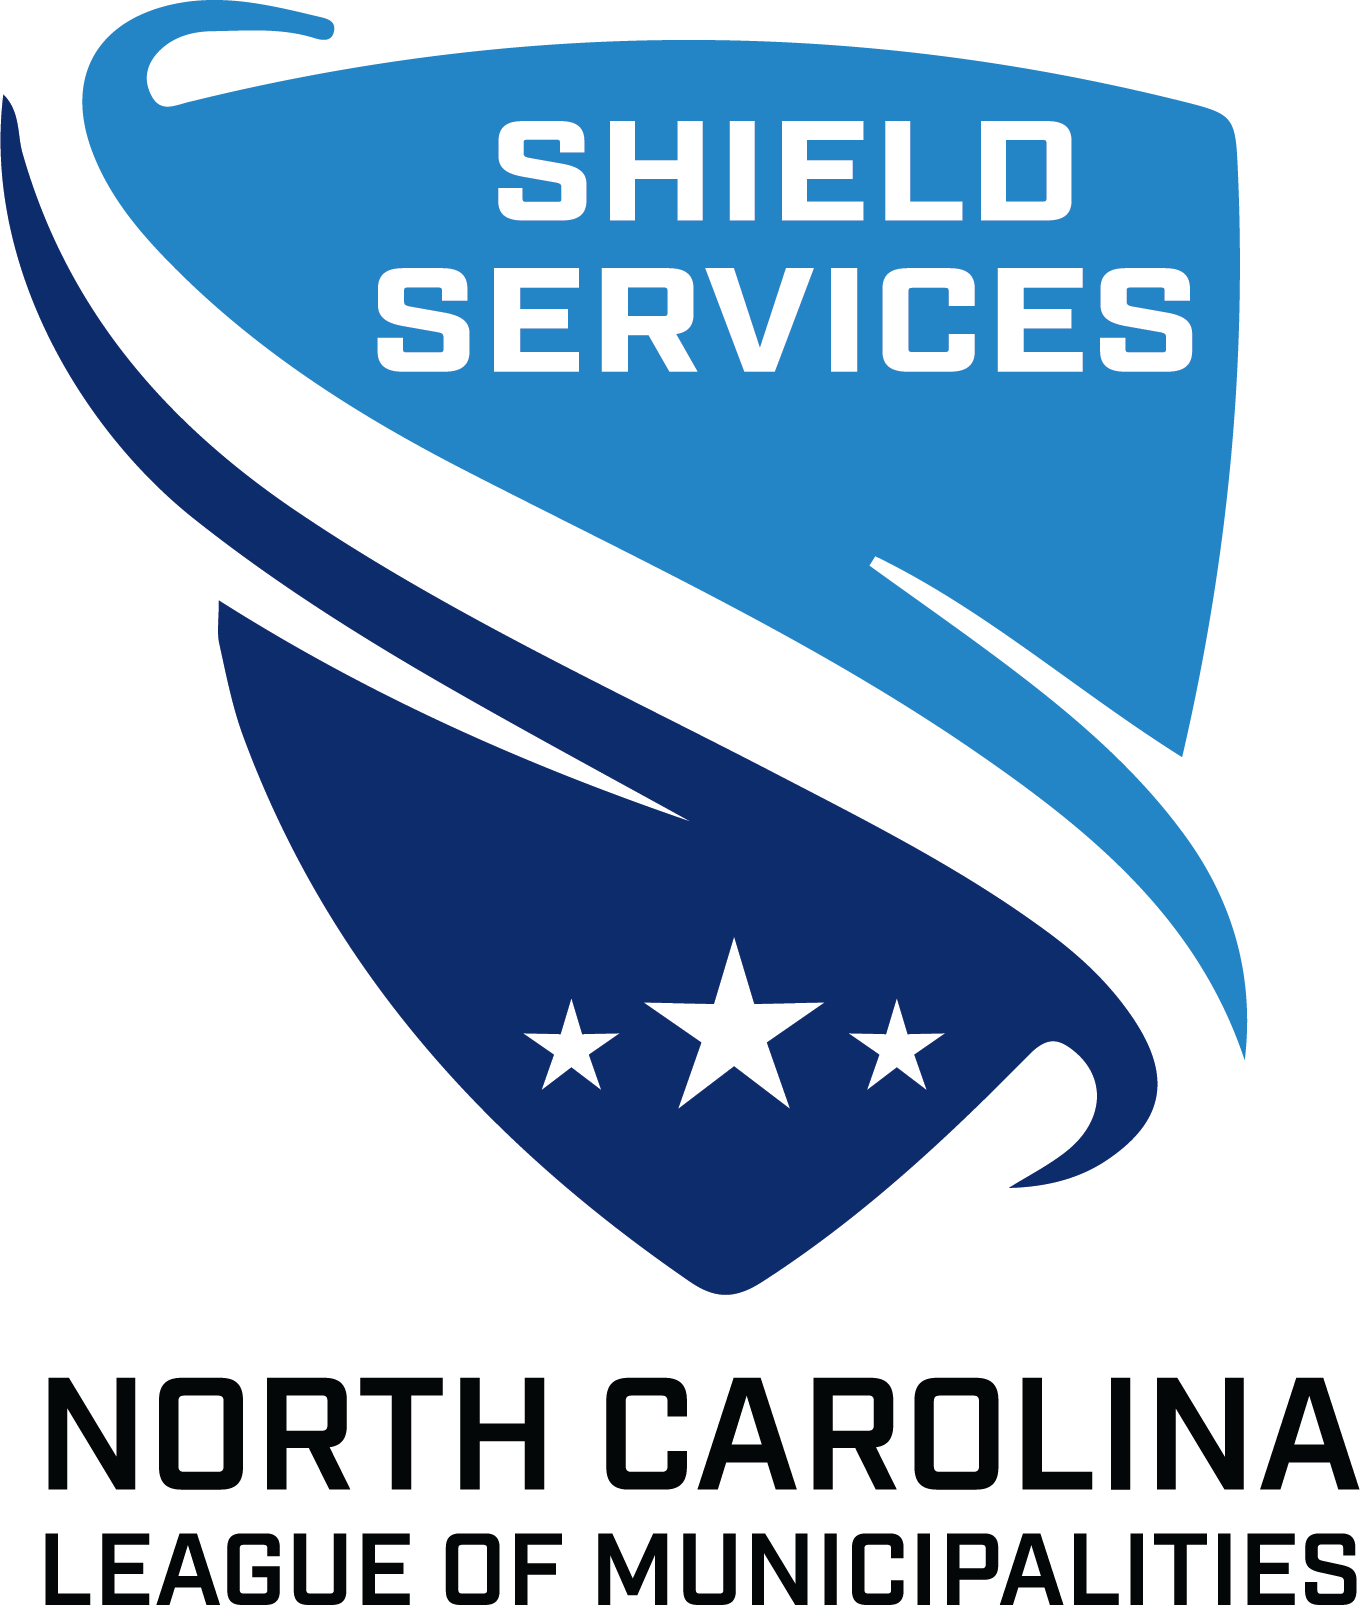 Shield Services - Police